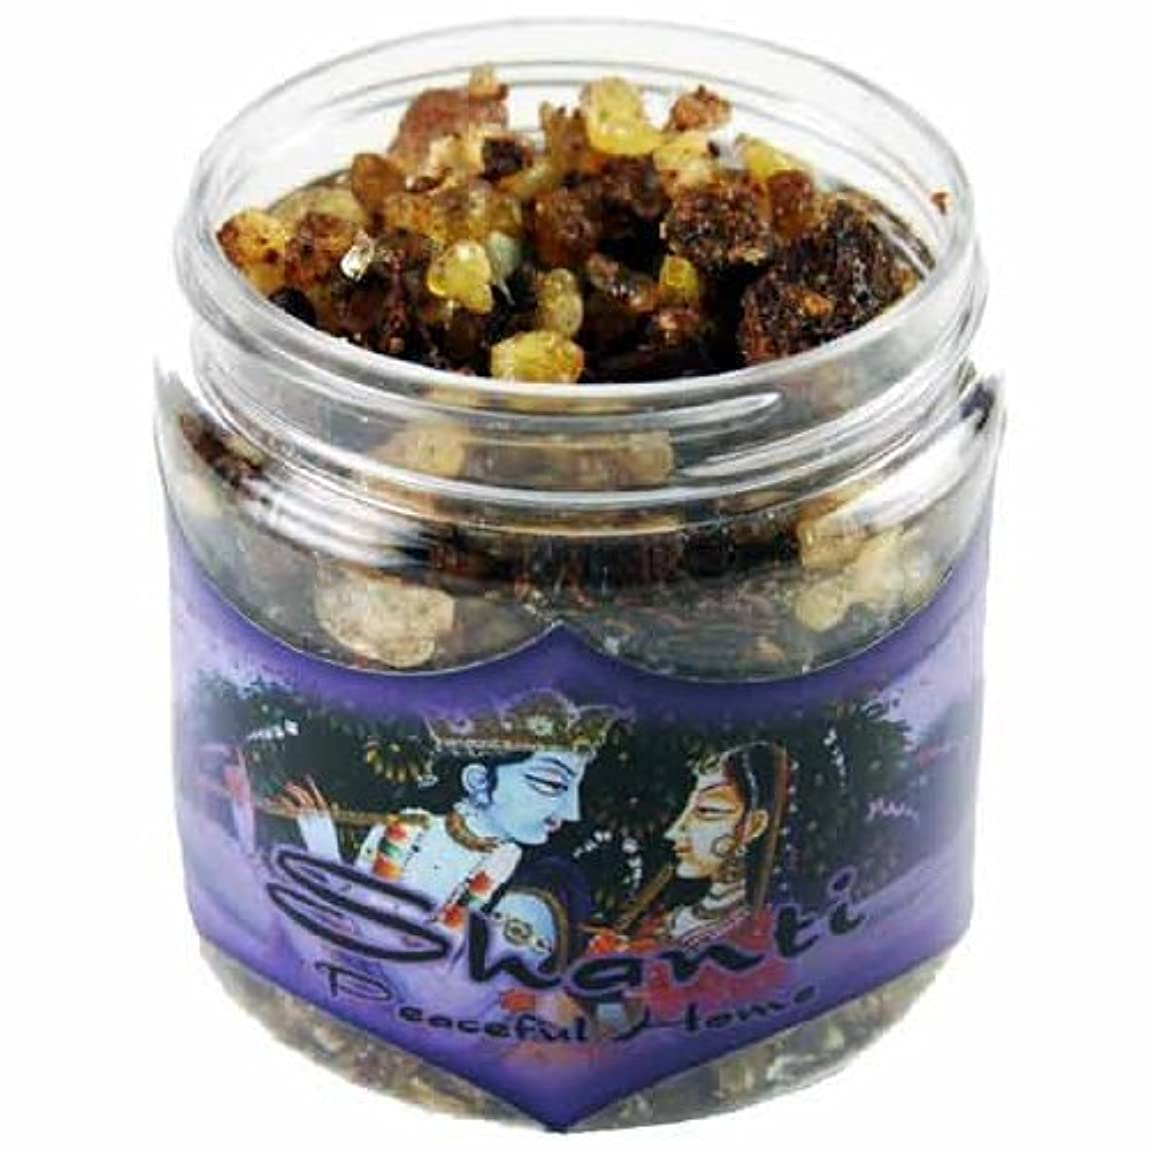 ラウズ一部ボイドResin Incense Shanti - Peaceful Home - 2.4oz jar [並行輸入品]